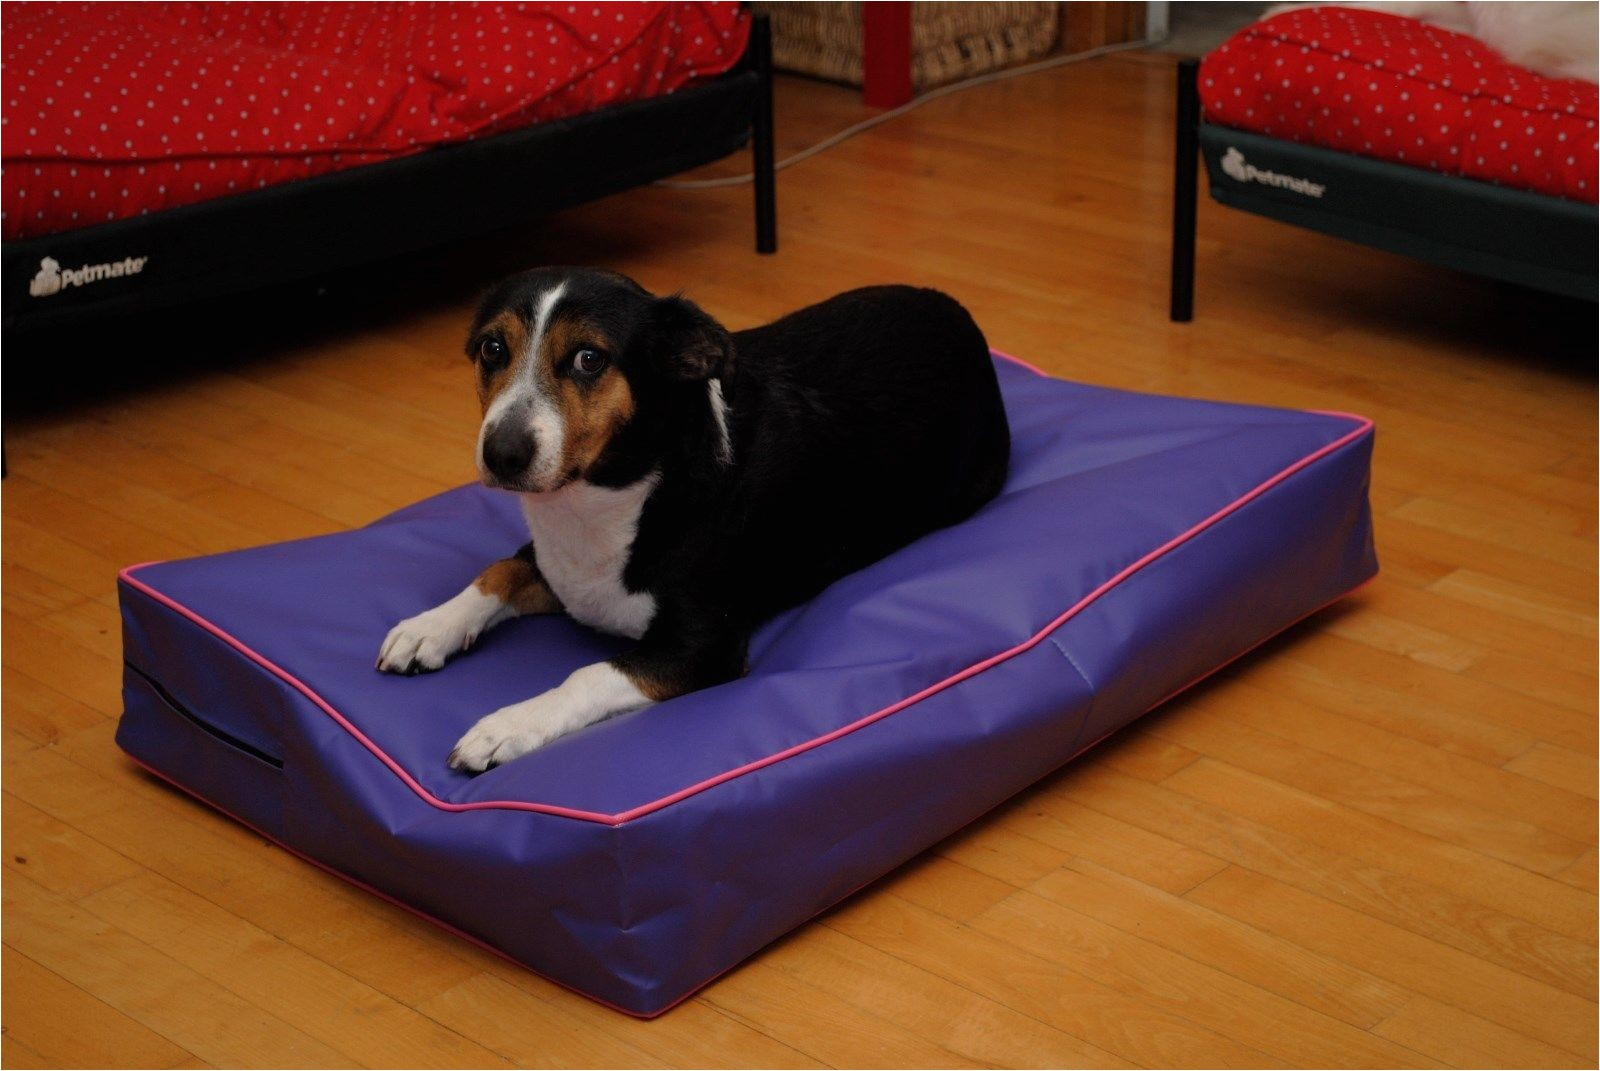 xl dog bed covers chew and dig proof by big ass dog company 1e885d6fb25c9f31